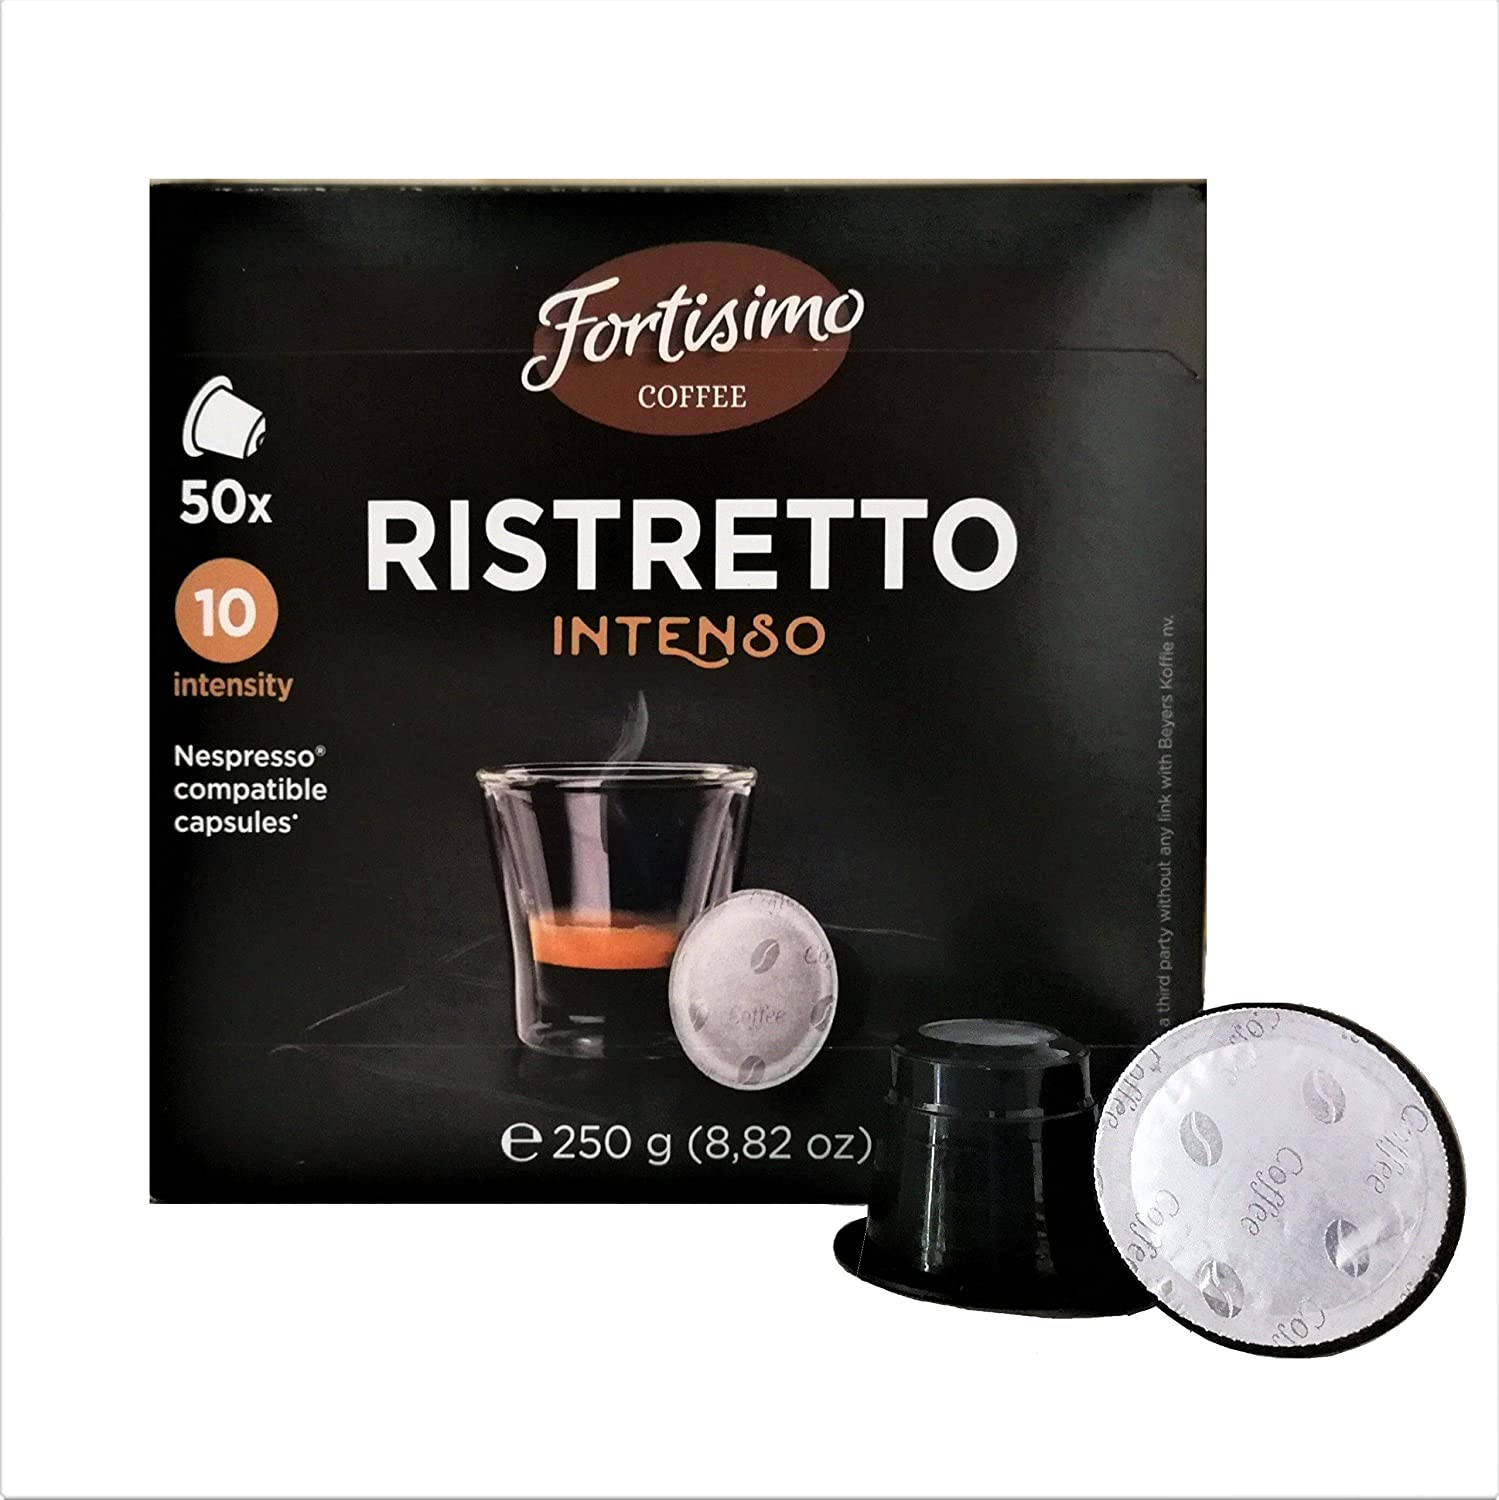 Fortisimo RISTRETTO Intenso Nespresso Compatible Capsule (one pack): Amazon.com: Grocery & Gourmet Food